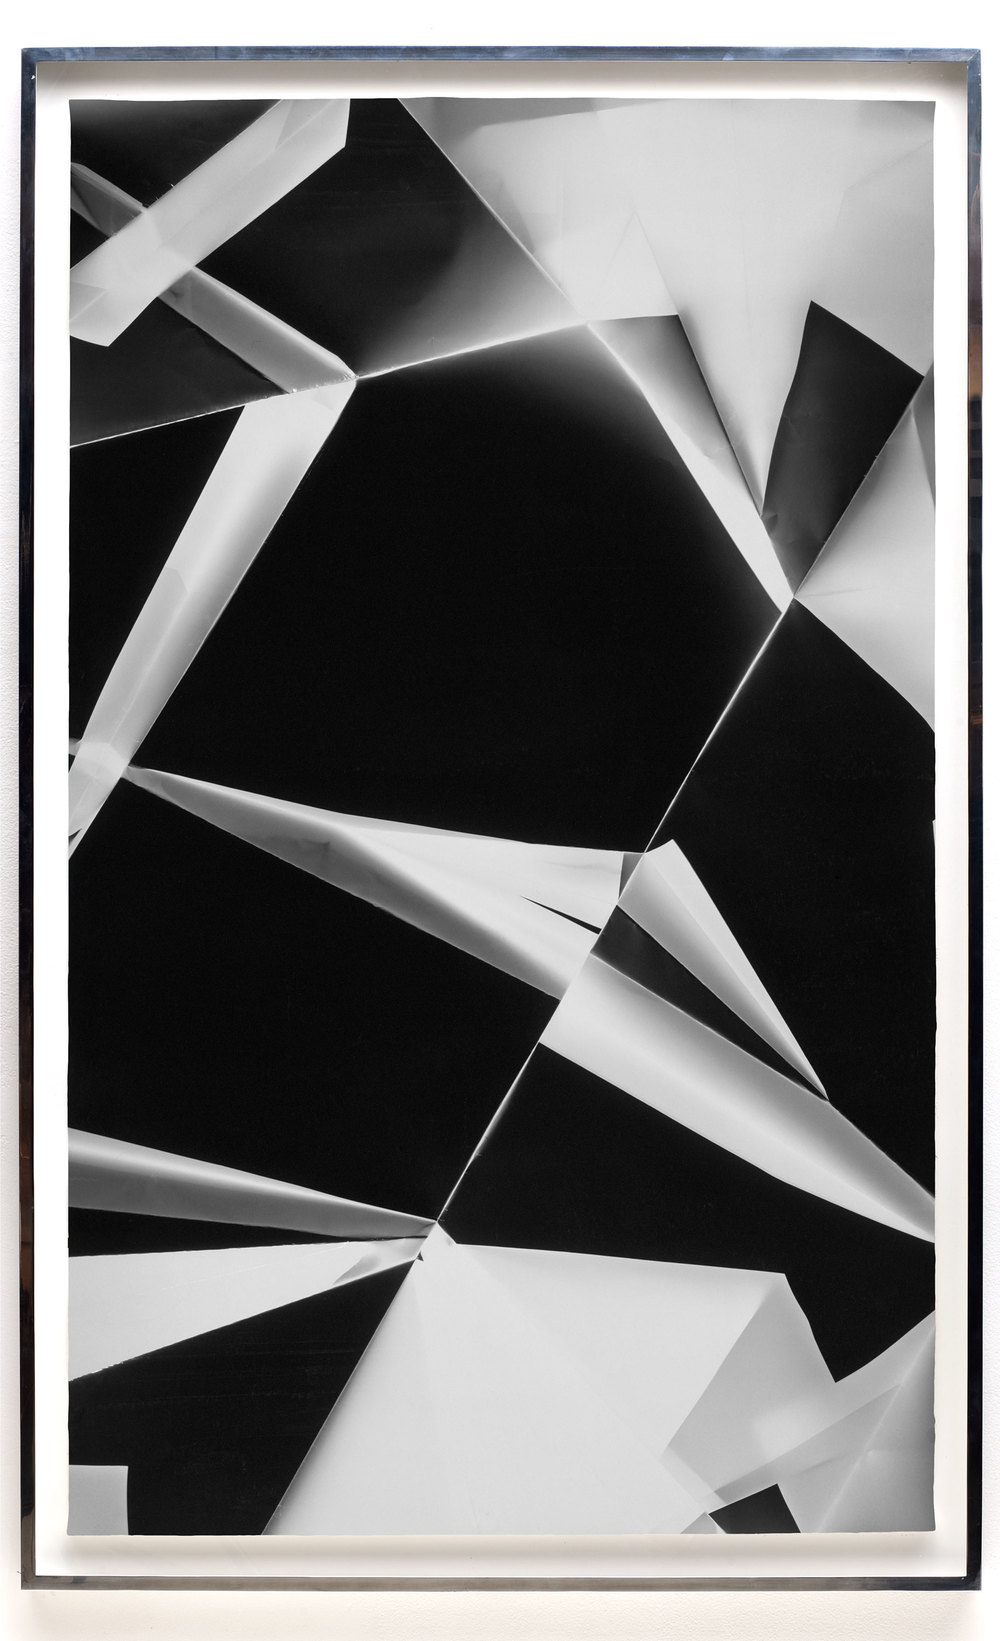 Fold (0º/90º/180º/270º directional light sources), June 13, 2008, Annandale-On-Hudson, New York, Foma Multigrade Fiber    2009   Black and white fiber based photographic paper  74 x 46 3/4 inches   Legibility on Color Backgrounds, 2009